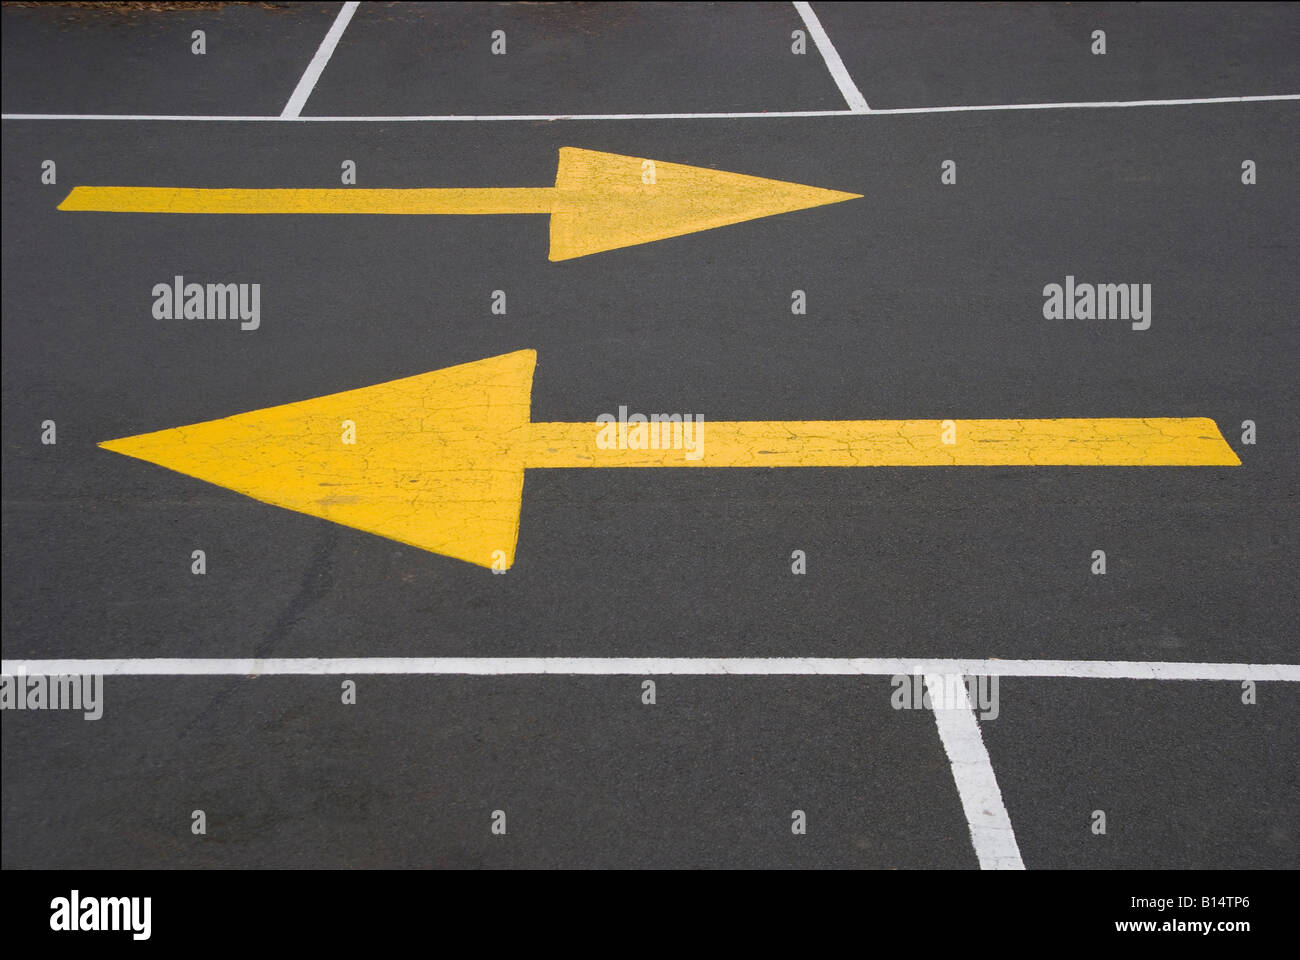 Yellow directional markings pointing in opposite directions - Stock Image